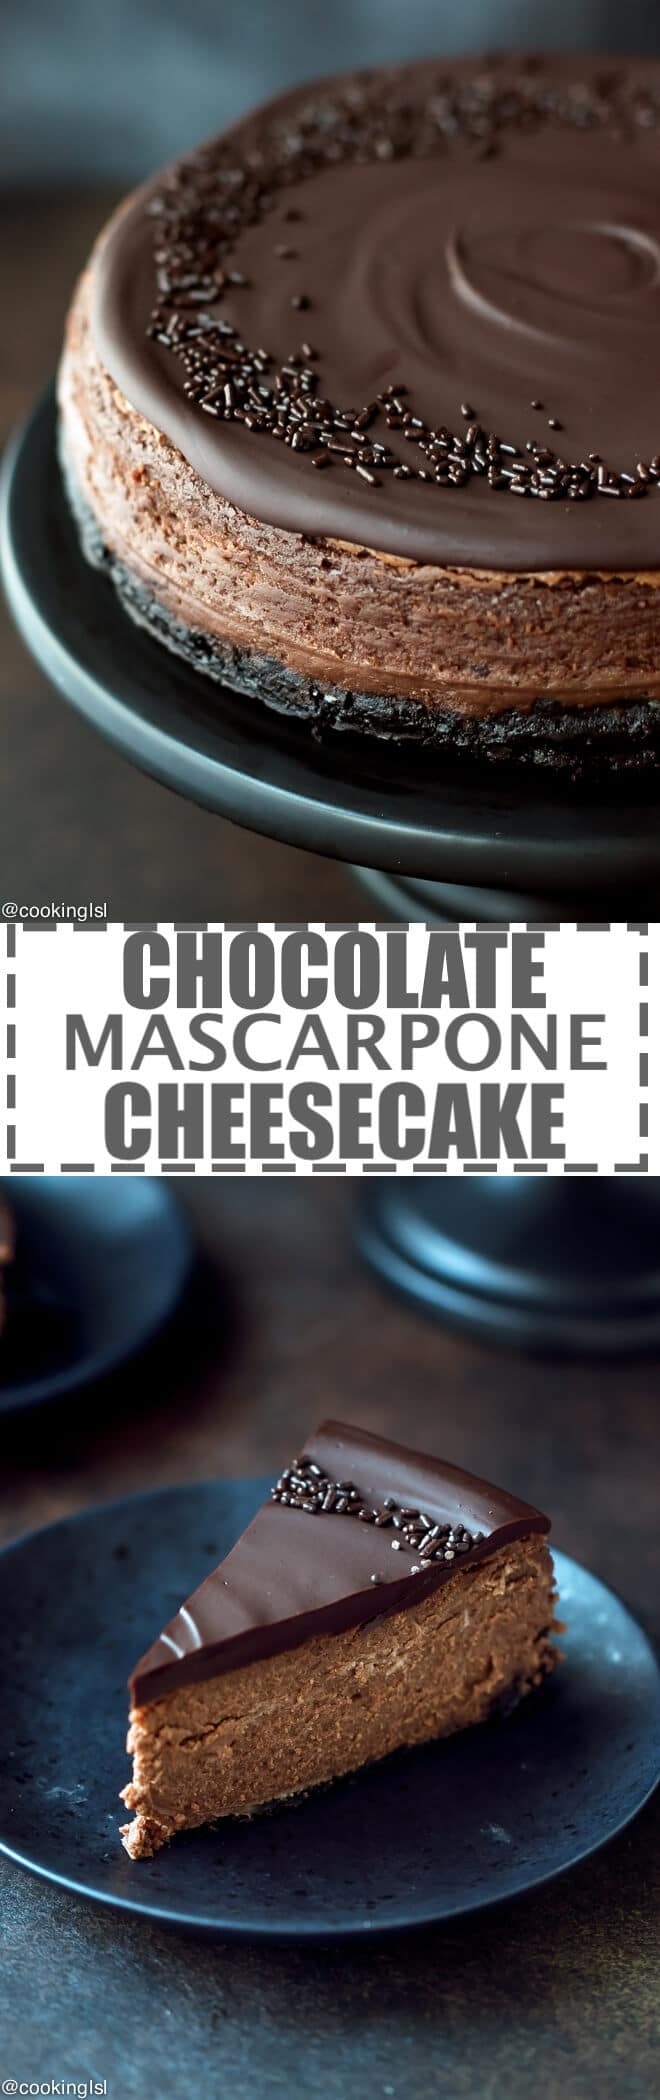 Chocolate Mascarpone Cheesecake Recipe - chocolate cookie crust, luscious dark chocolate mascarpone filling and rich chocolate ganache topping. Chocolate lover's heaven! Easy to make, but impressive dessert for any occasion.